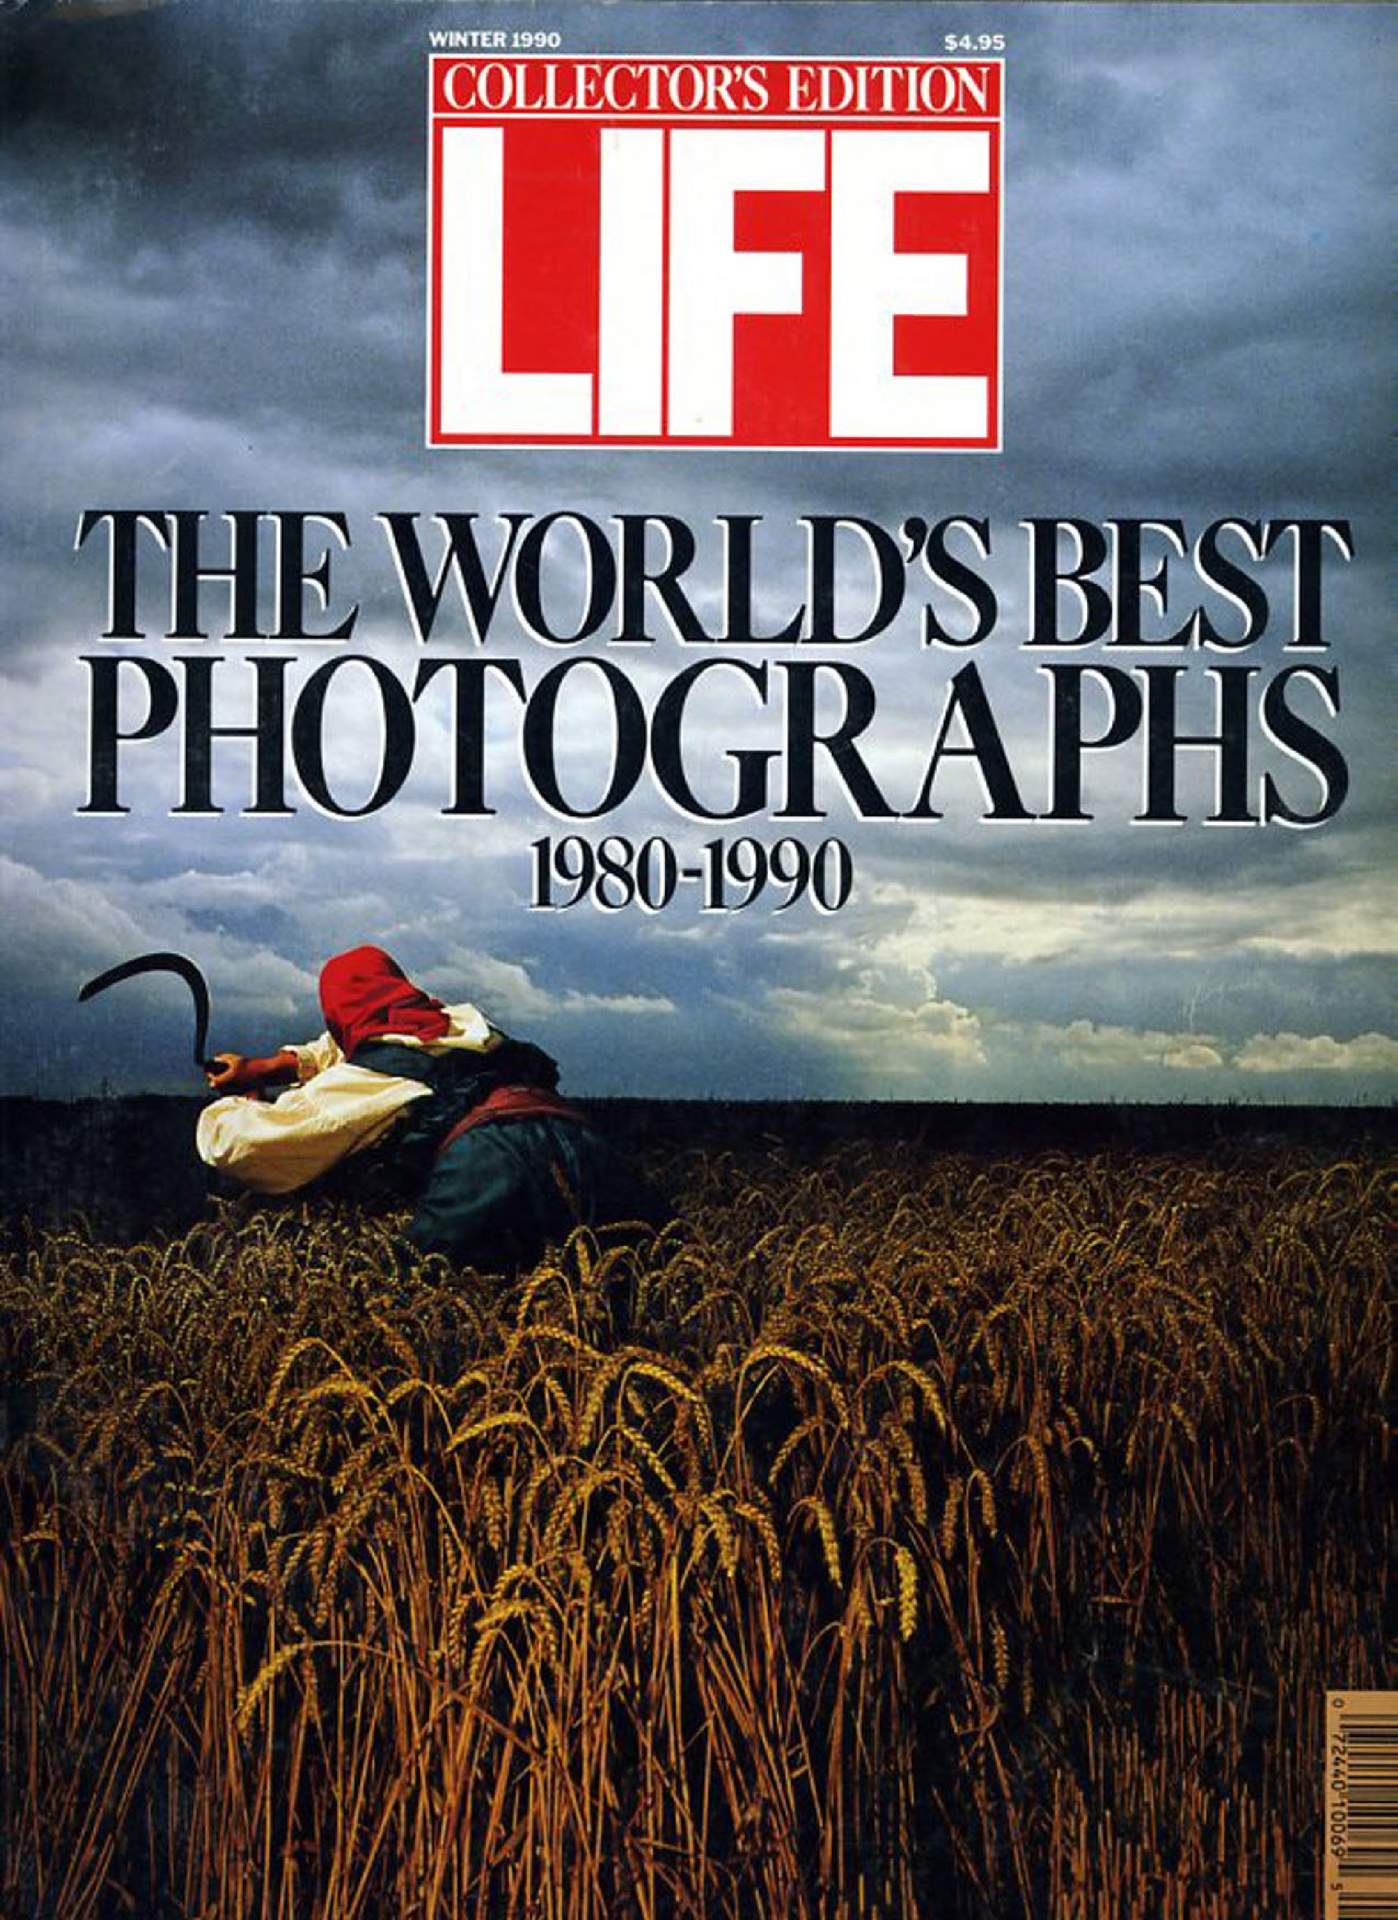 Life Magazine Front Cover, Winter 1990